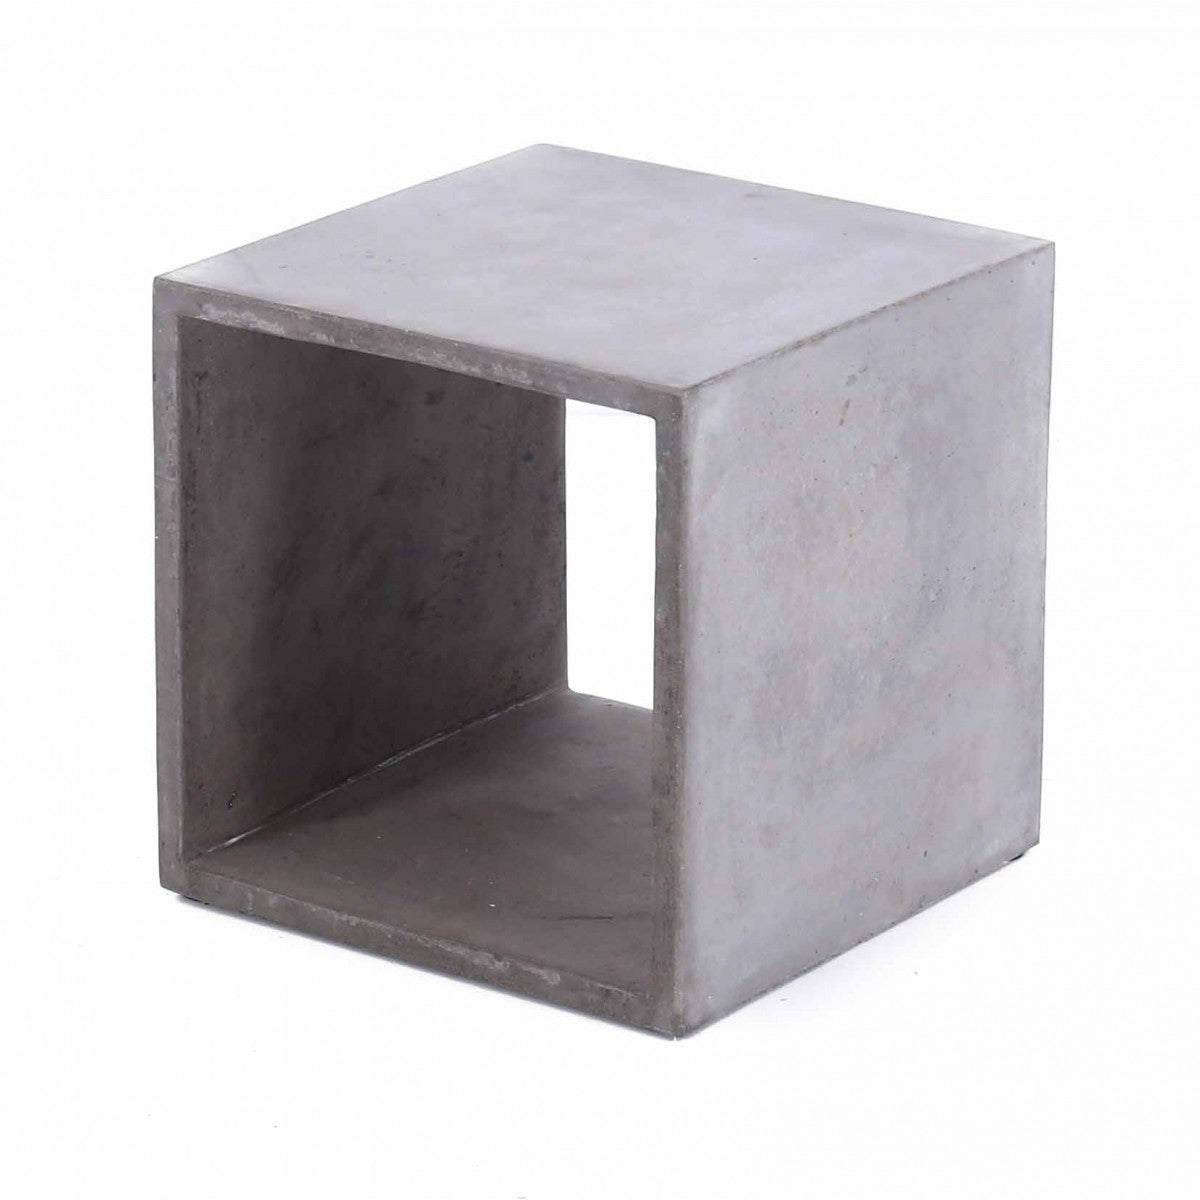 furniture maison durable vega concrete cube. Black Bedroom Furniture Sets. Home Design Ideas